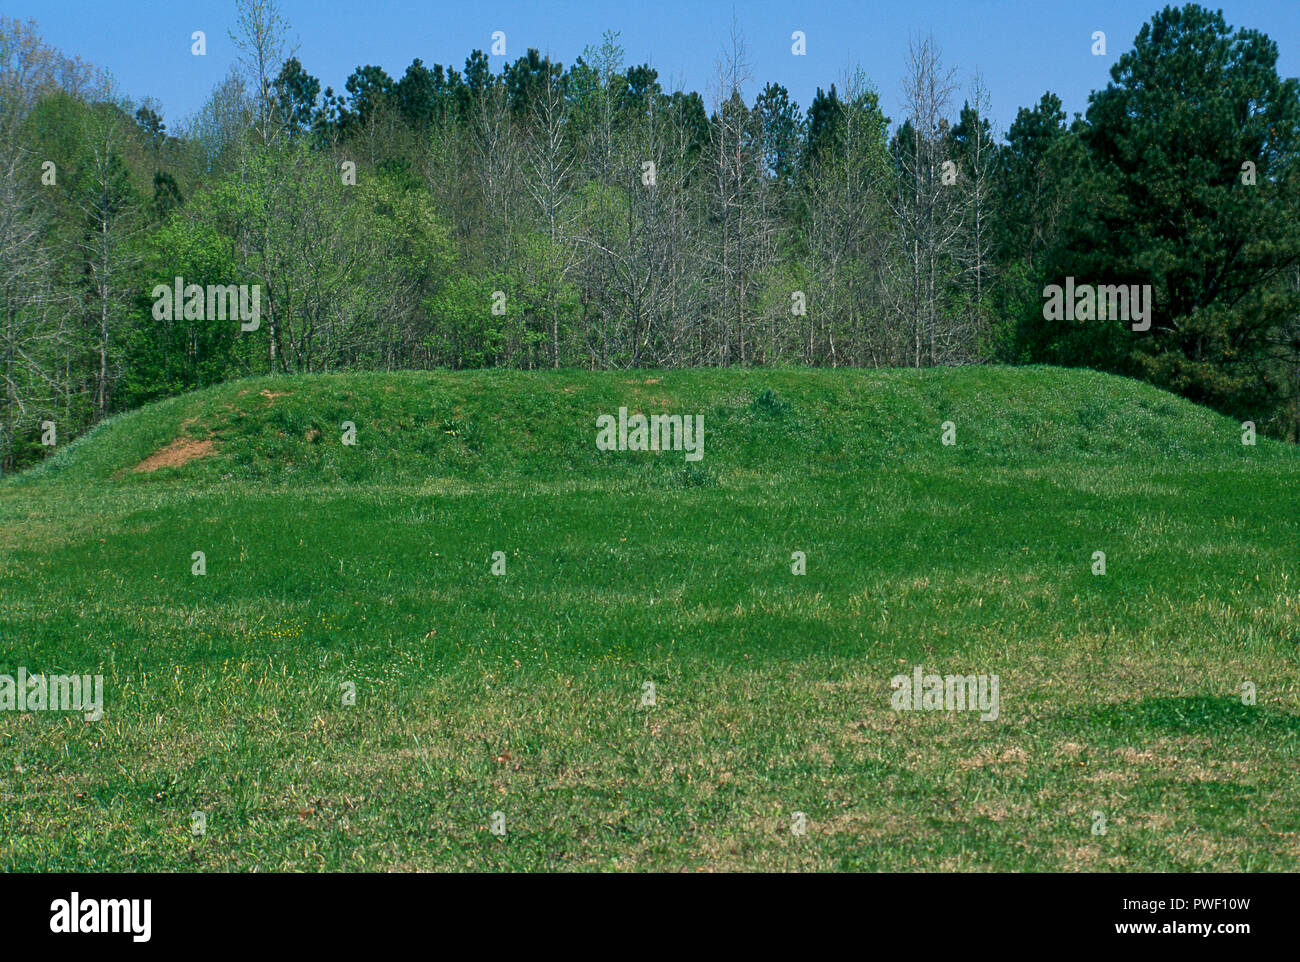 Bear Creek Mound, Natchez Trace, Mississippi, built AD 1200-1400 as a ceremonial structure. Photograph - Stock Image